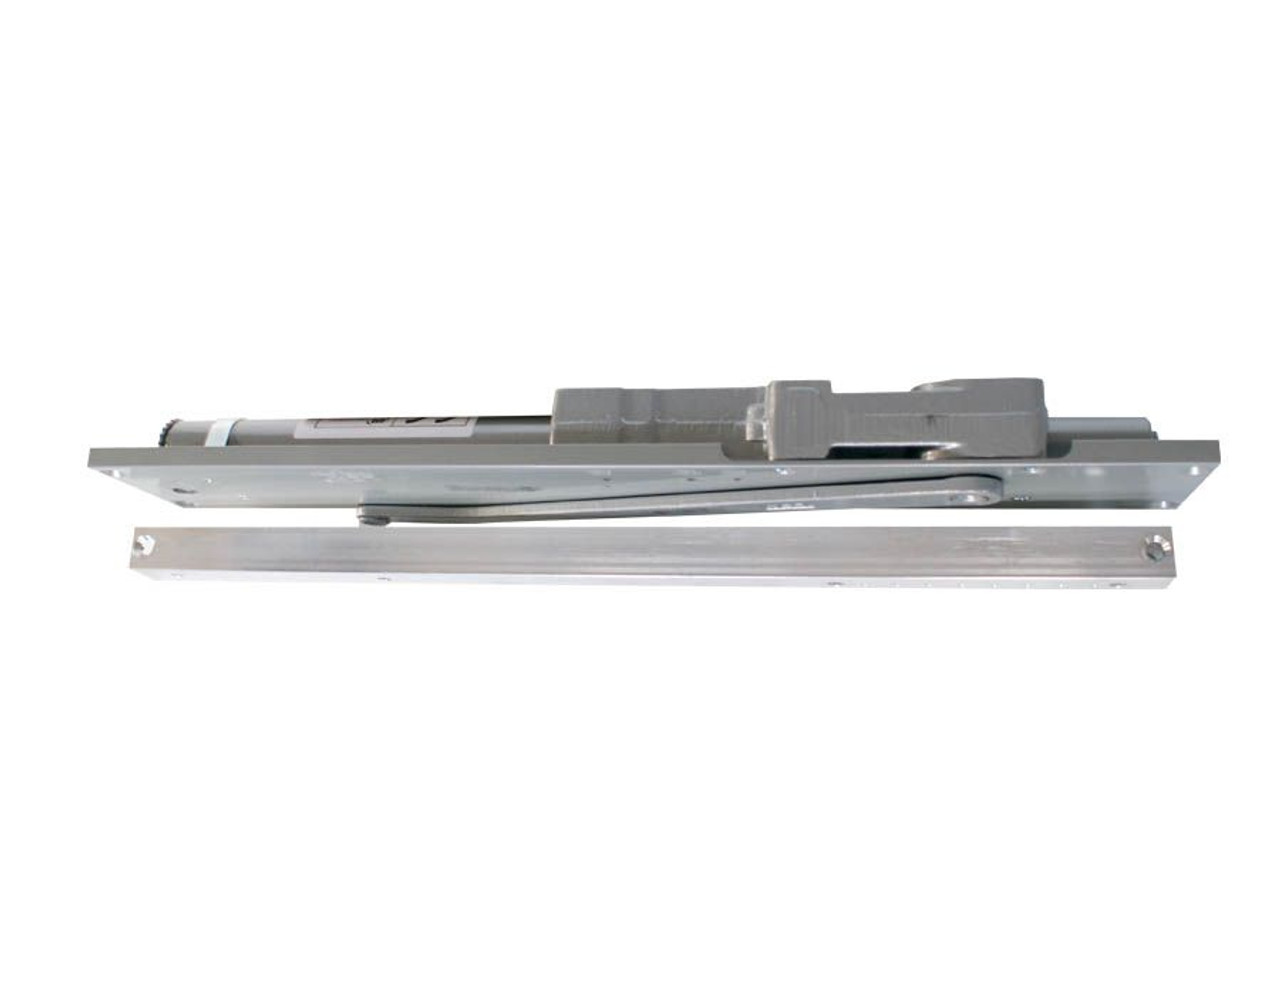 5036-REG-LH-AL LCN Concealed Door Closer with Regular Arm in Aluminum Finish